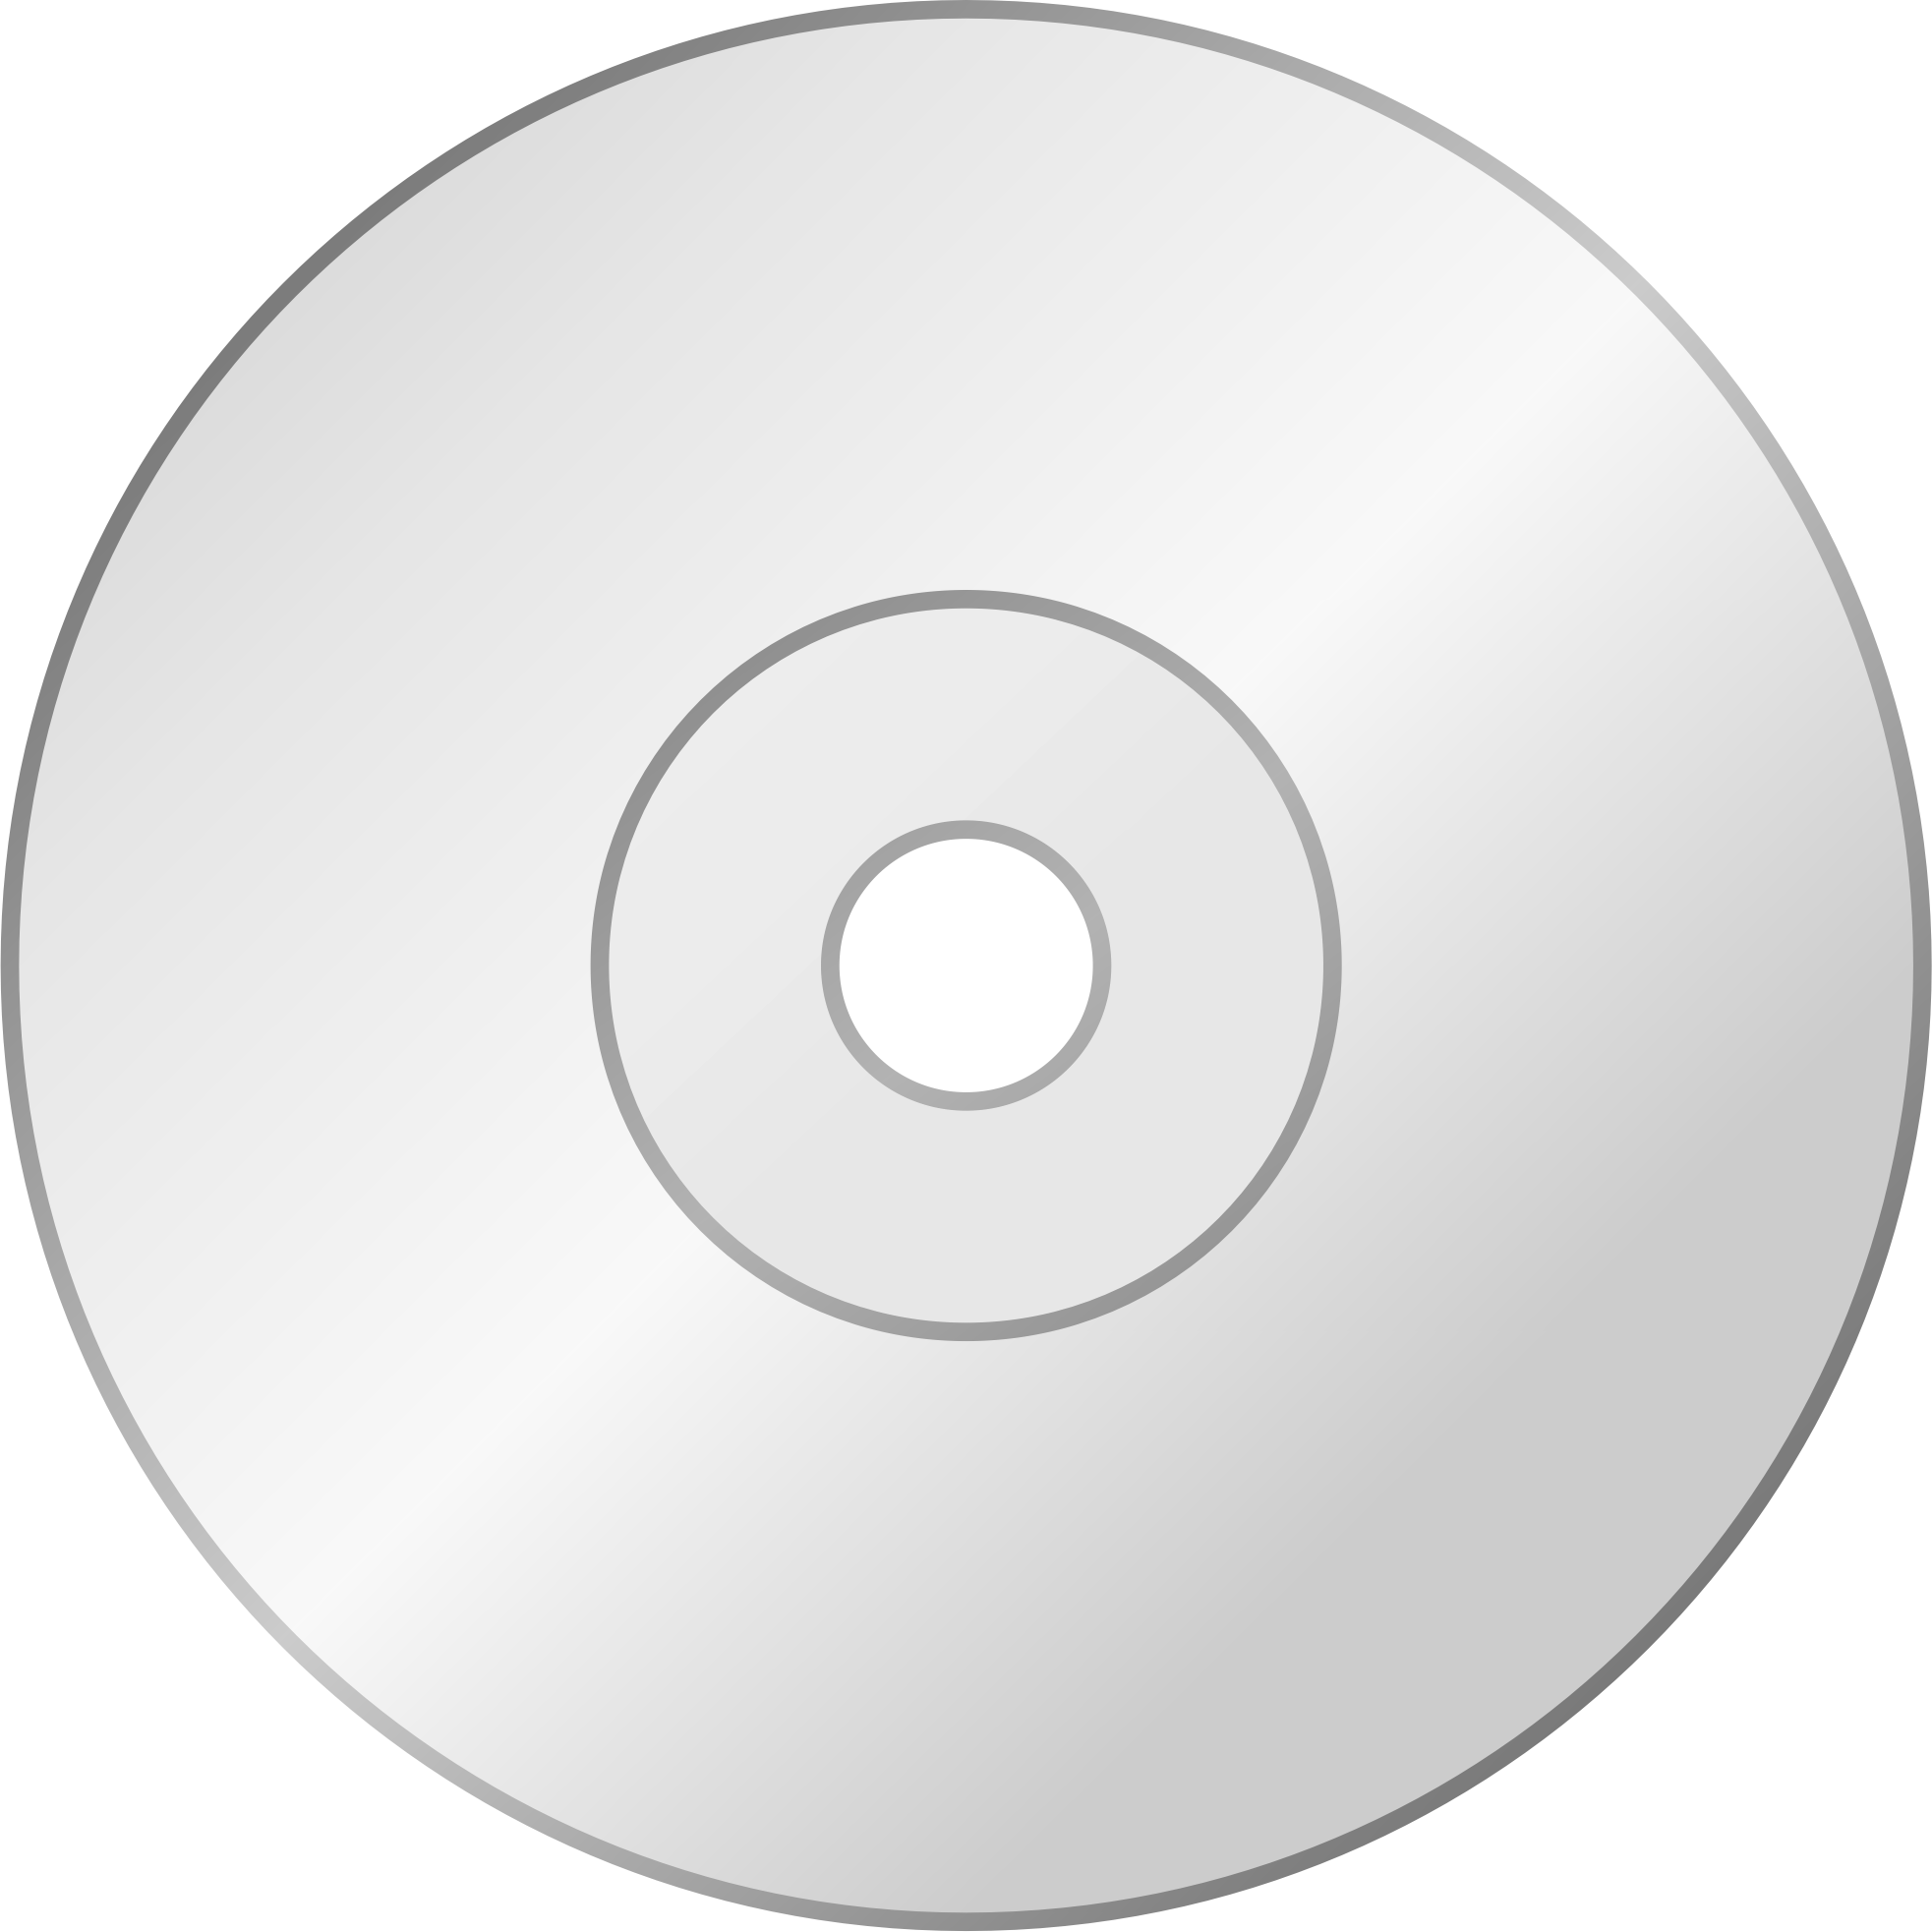 Blank cds png. Collection of cd